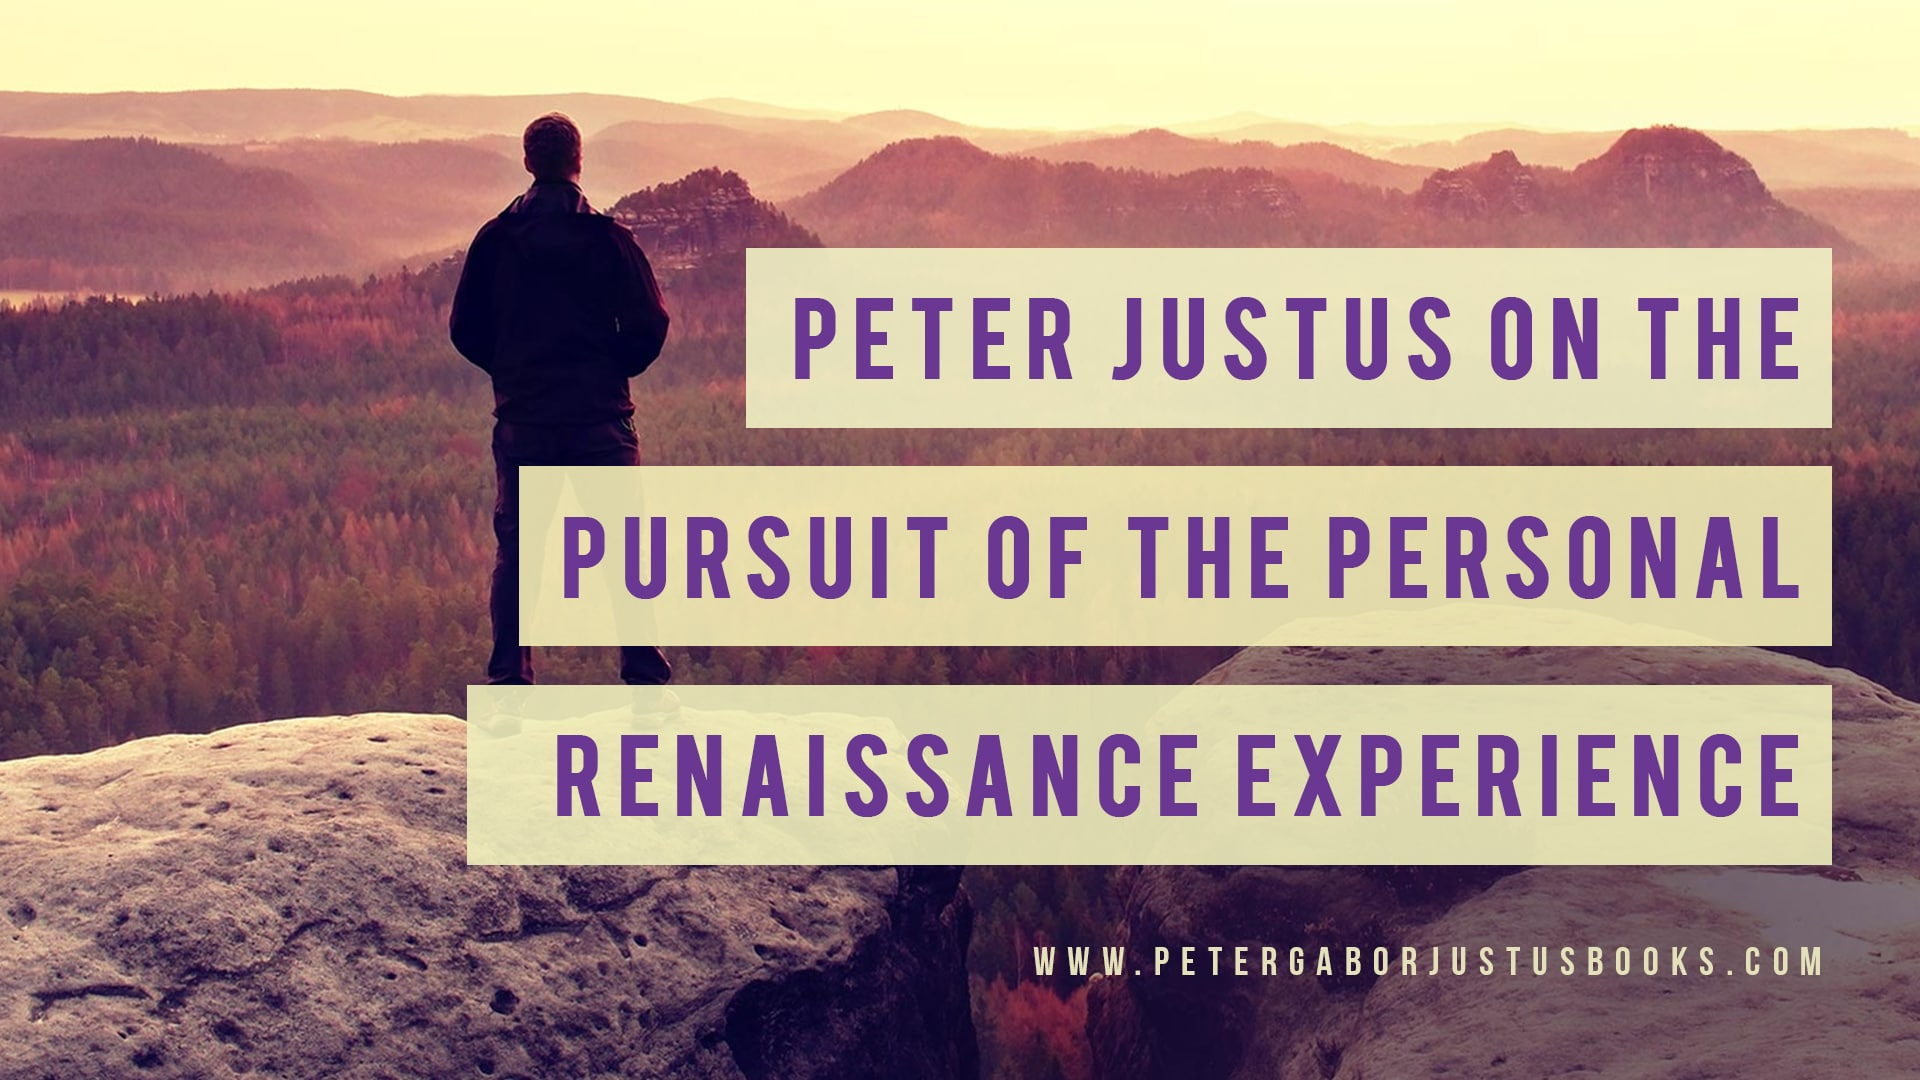 Peter Justus on The Pursuit of the Personal Renaissance Experience banner